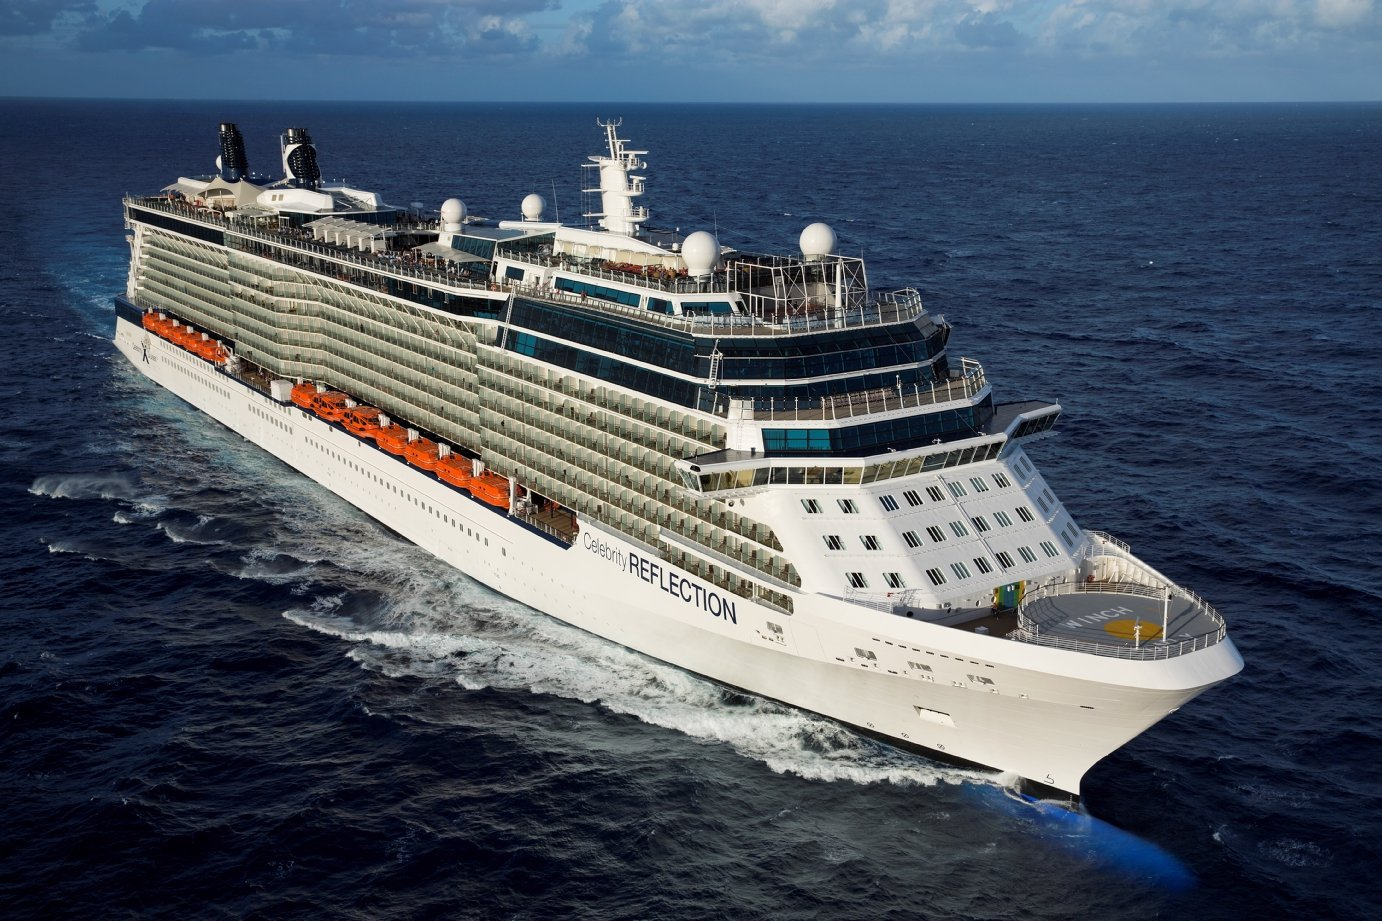 13 nachten met de Celebrity Reflection